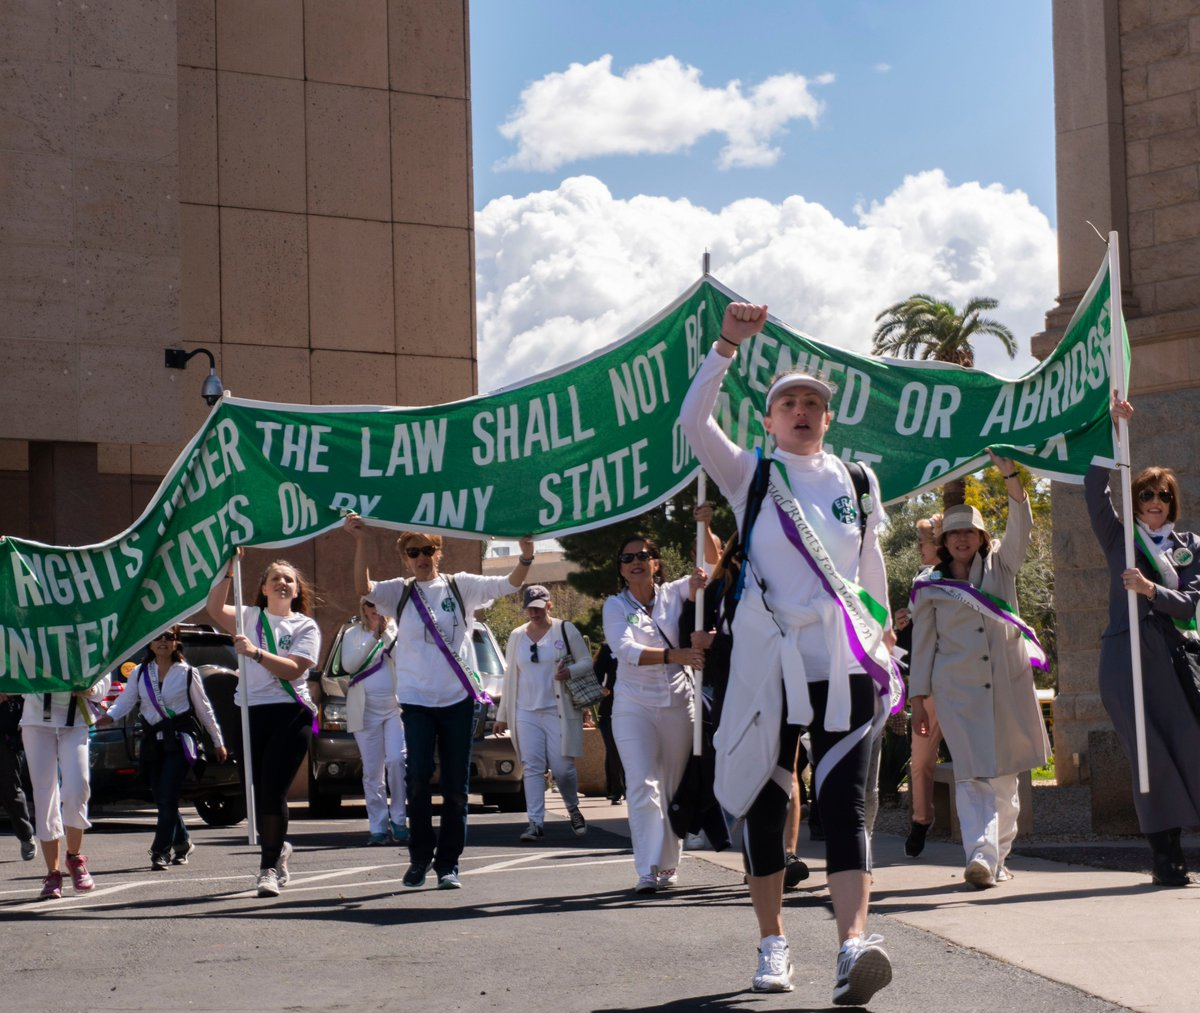 #ERAyesAZ supporters returned to the Capitol from a 38-mile march for equality, demanding the ERA bills to be heard in the House and the Senate. #azleg needs to be the 38th state! Keep watching for more coverage. #ERANOW #shepersisted